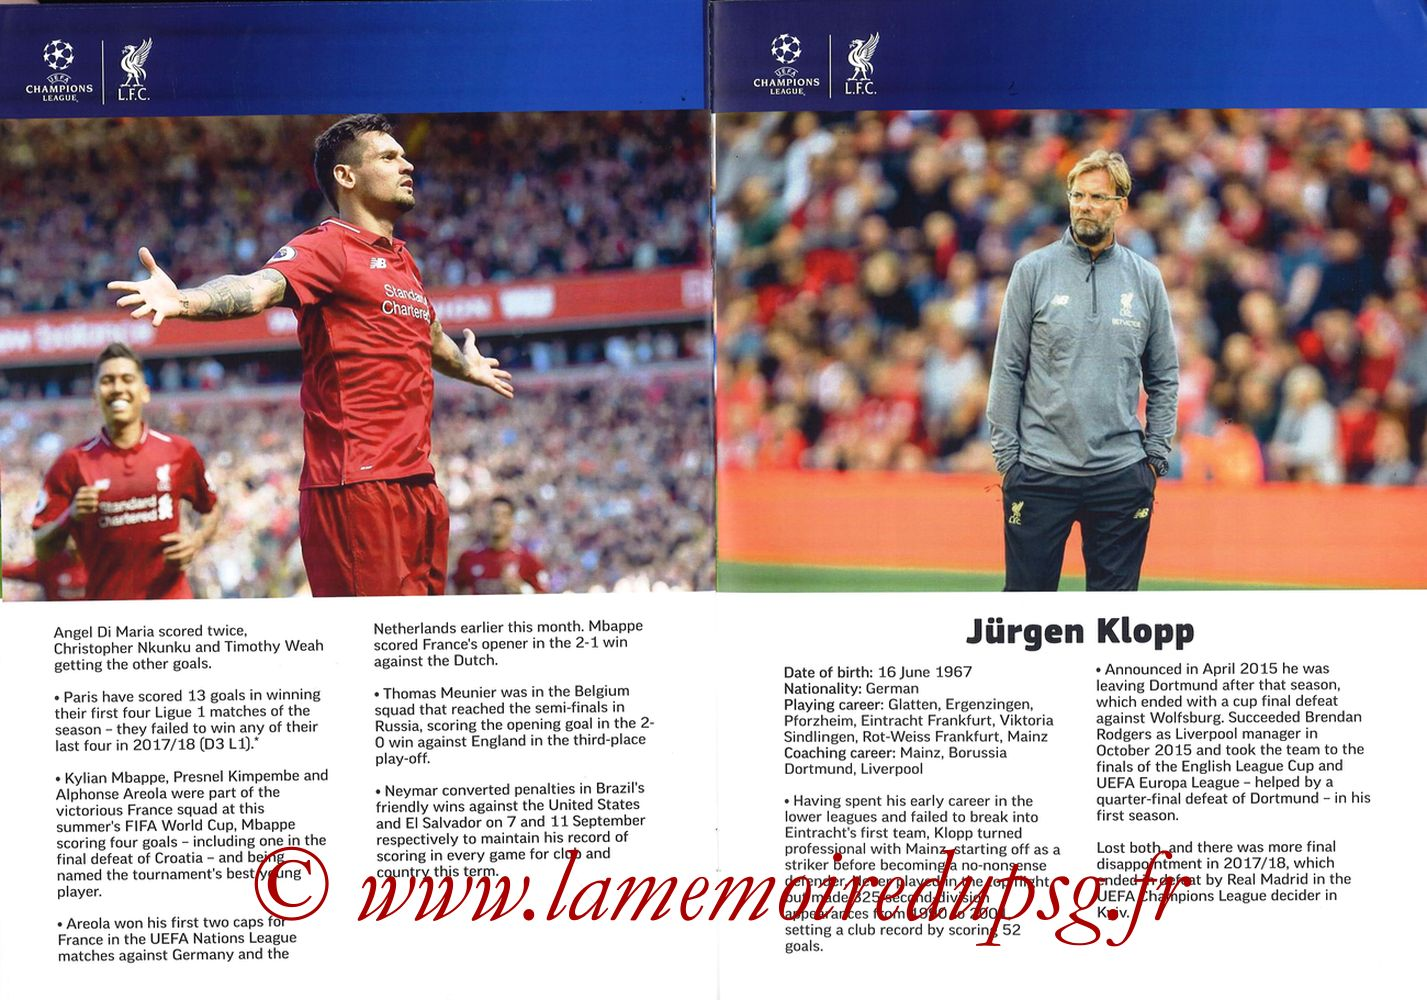 2018-09-18  Liverpool-PSG (1ère C1, Programme pirate) - Pages 08 et 09